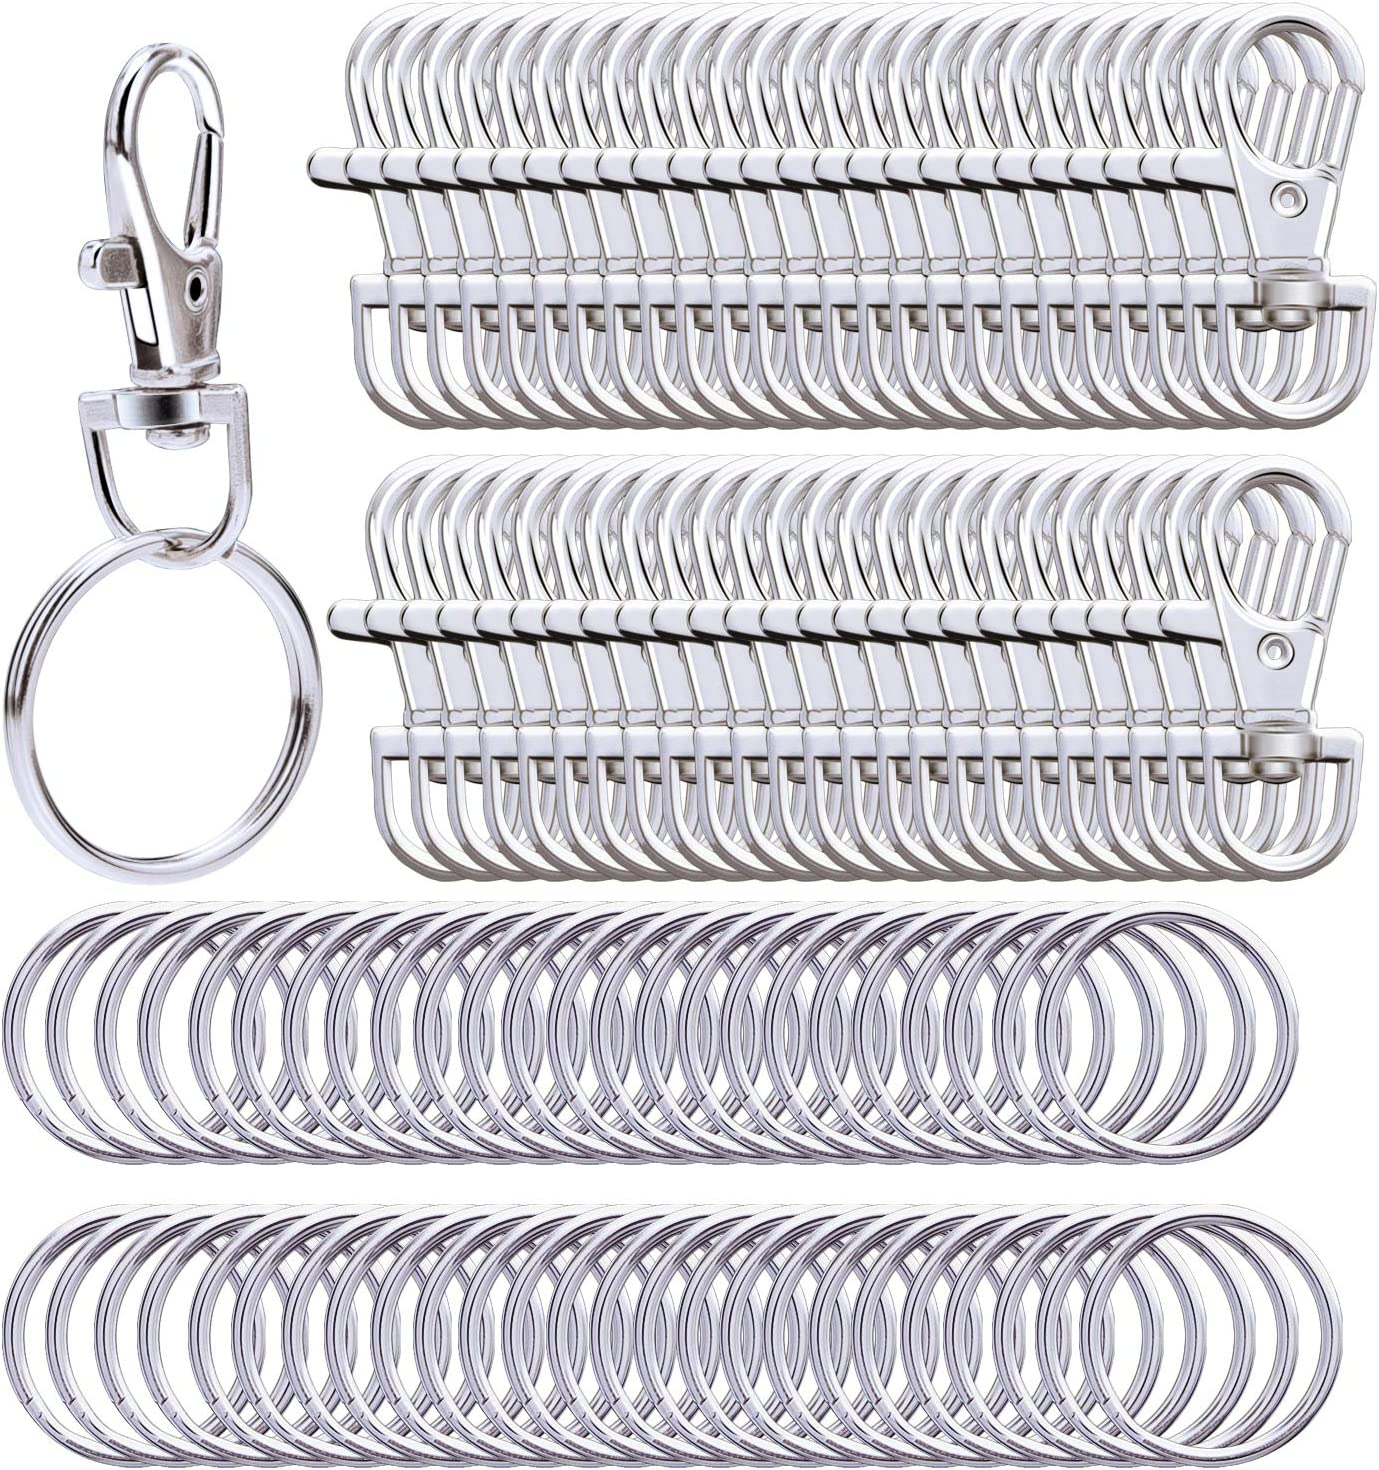 Paxcoo 150 Pcs Key Chain Hooks with Key Rings and D Rings Bulk for Lanyard Supplies Small Size